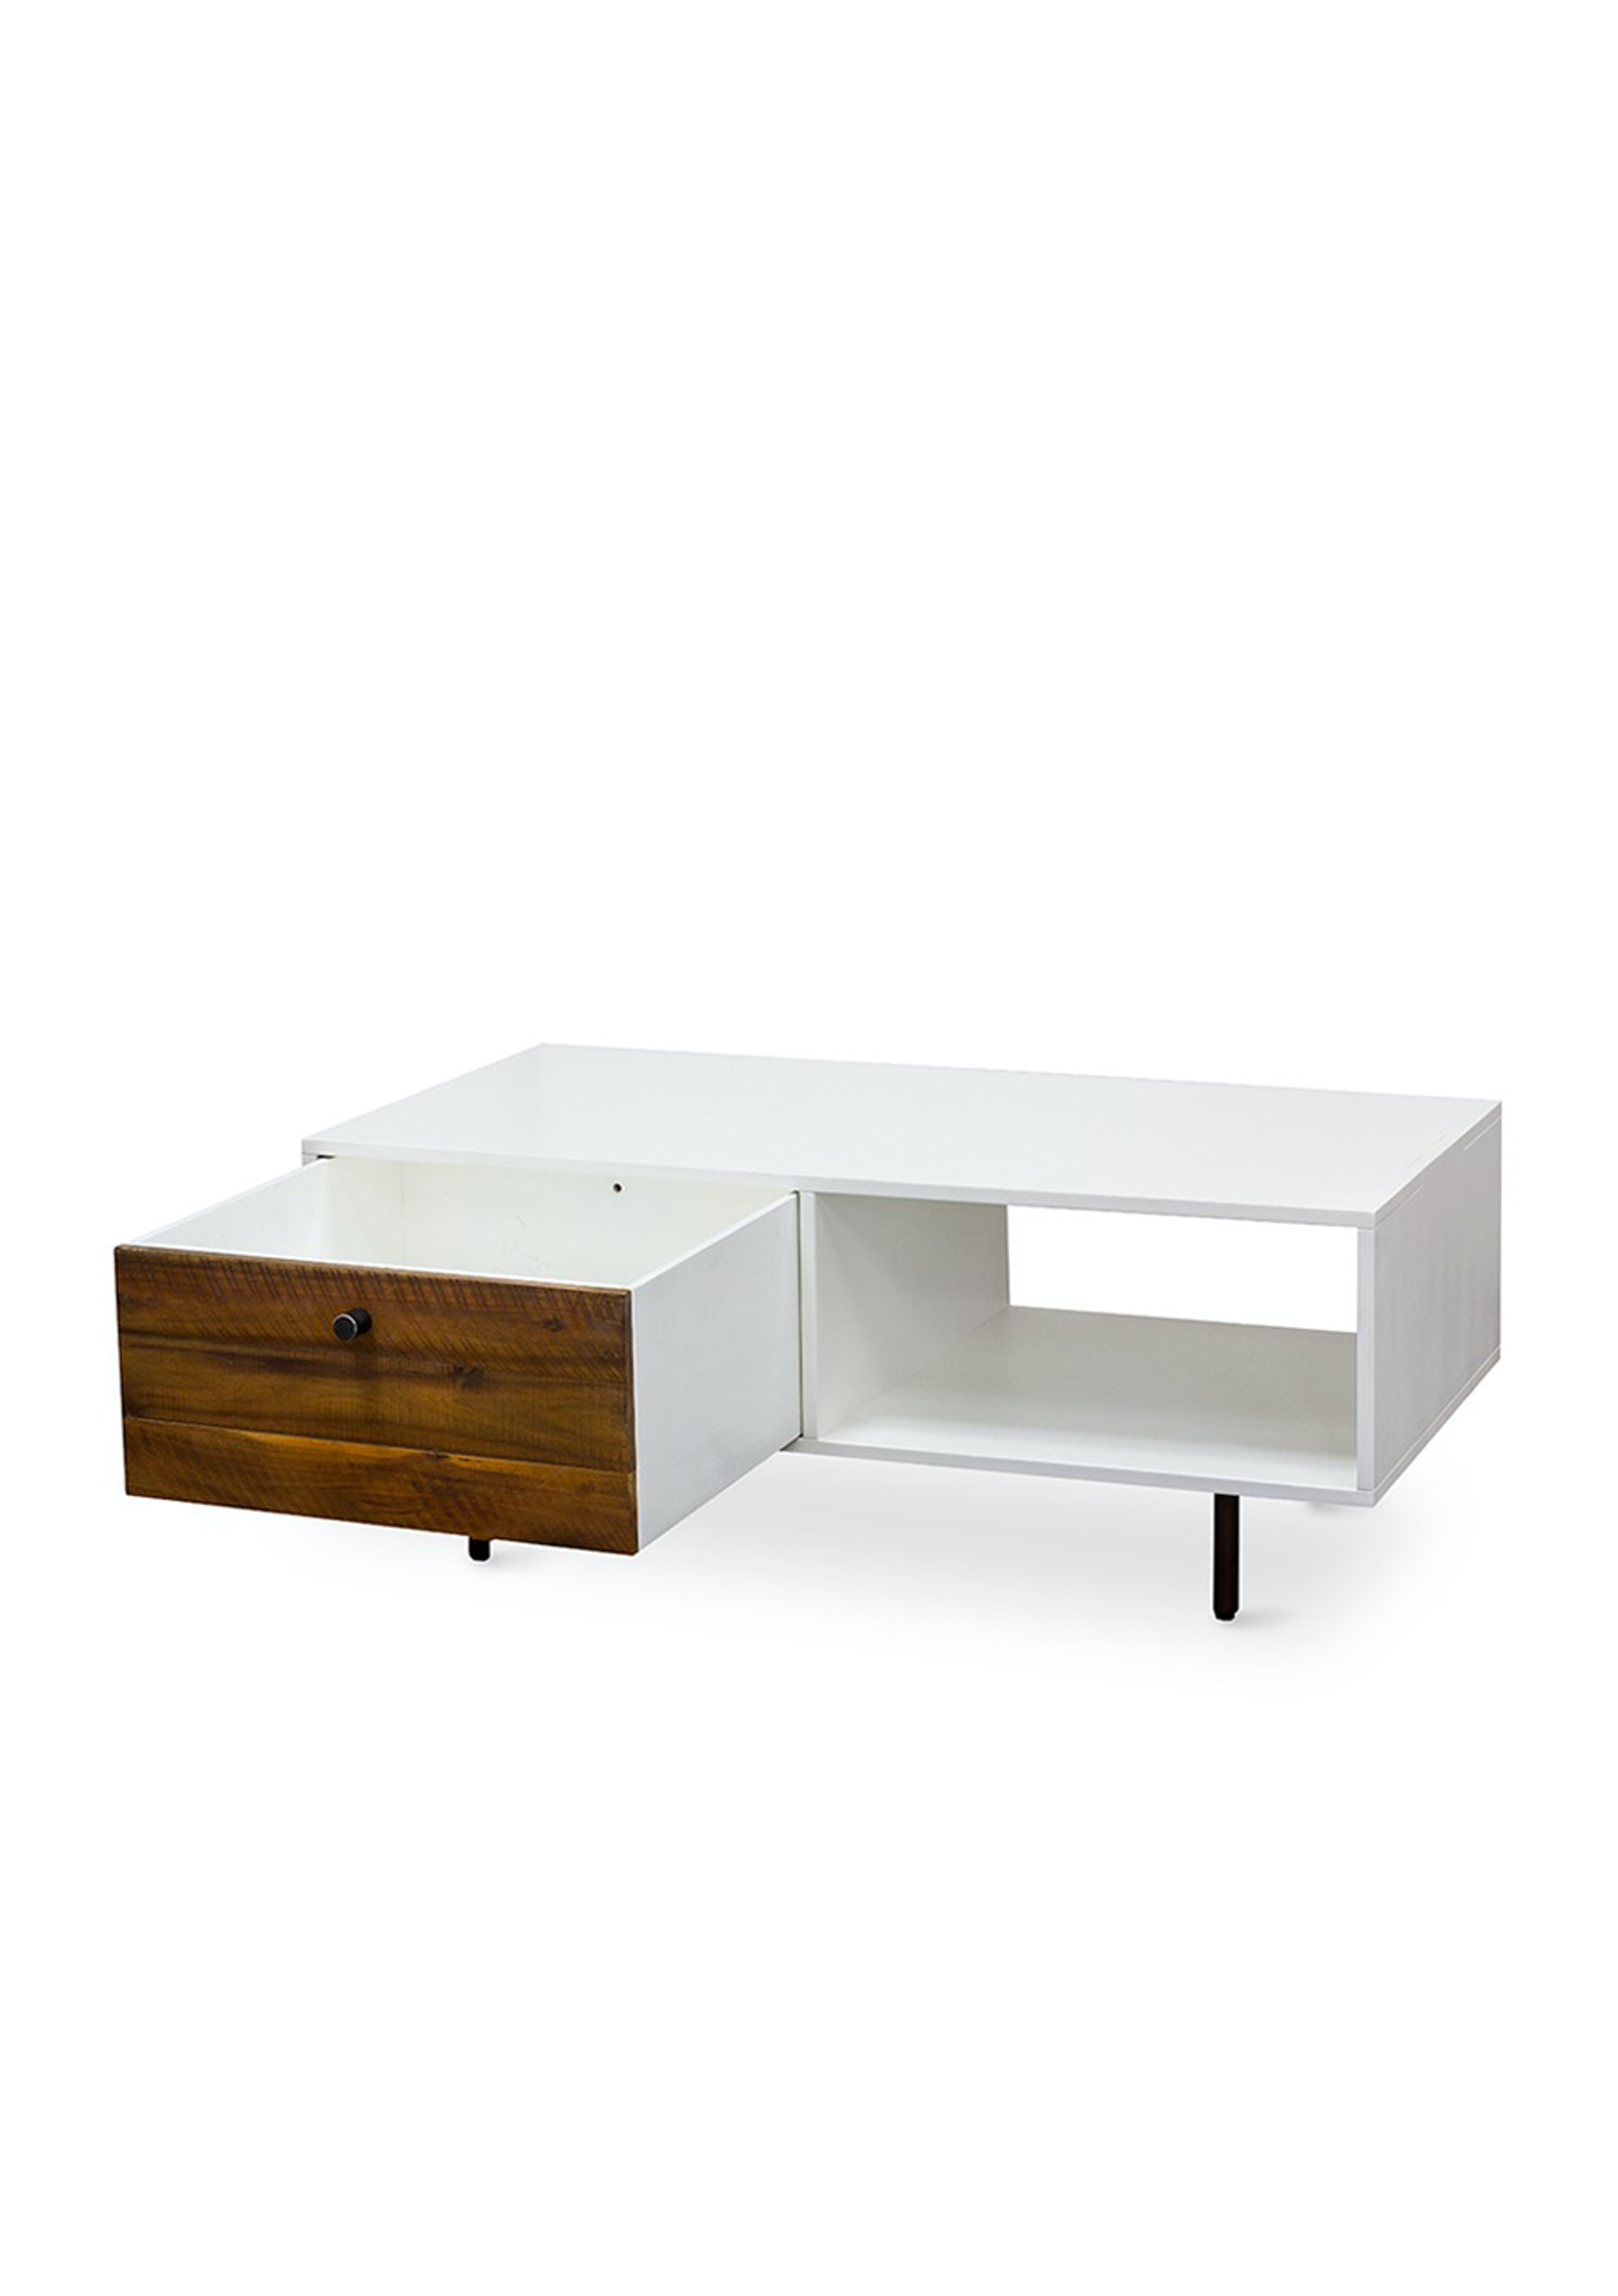 Furniture By Design Rustic Madrid Coffee Table New Collection